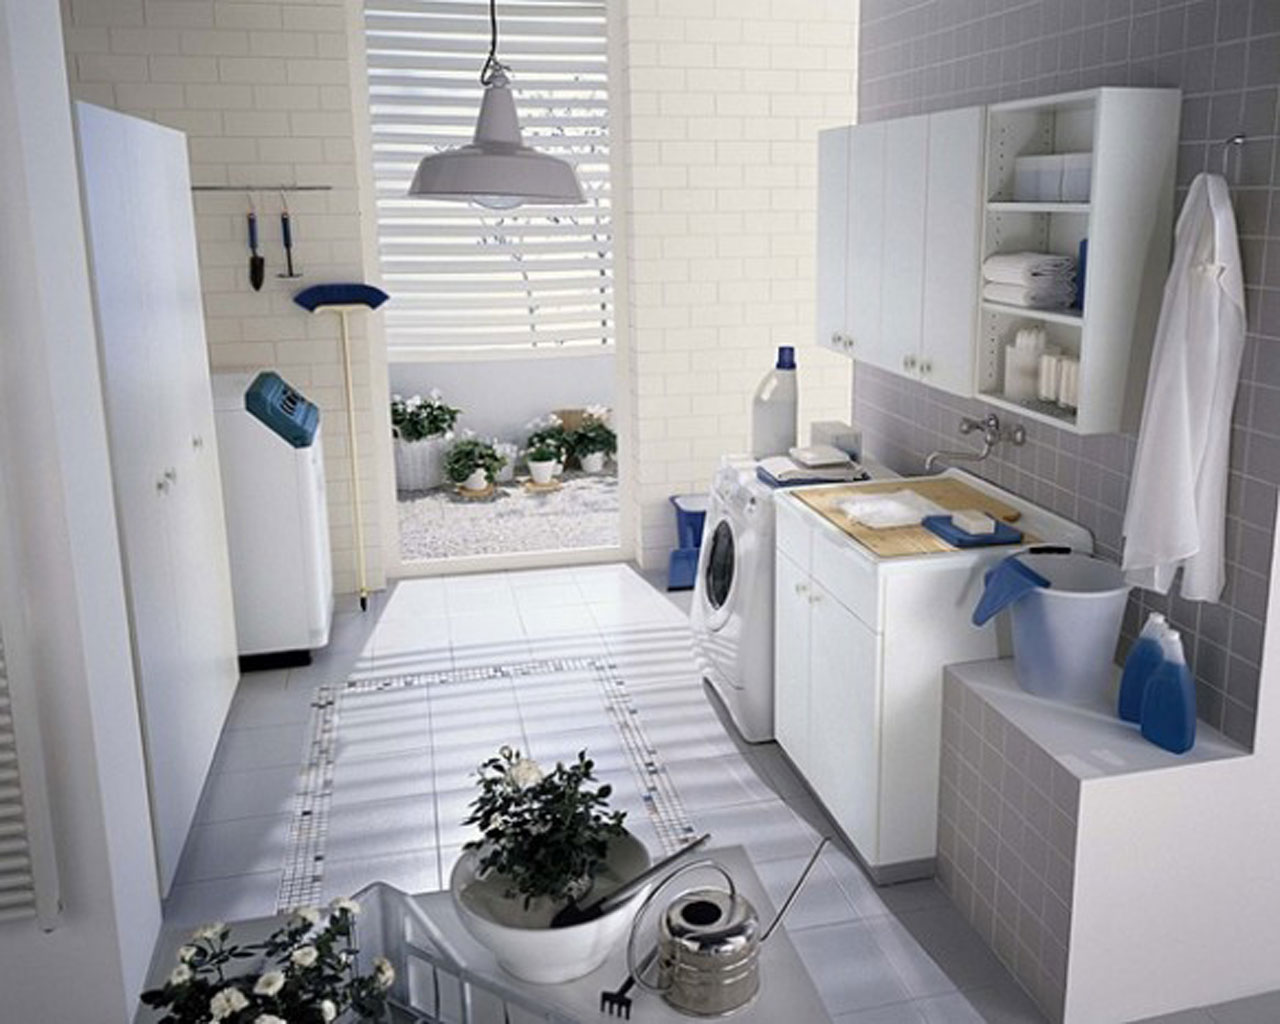 Small bathroom designs 2013 bathroom designs ideas - Decorating laundry room ideas ...